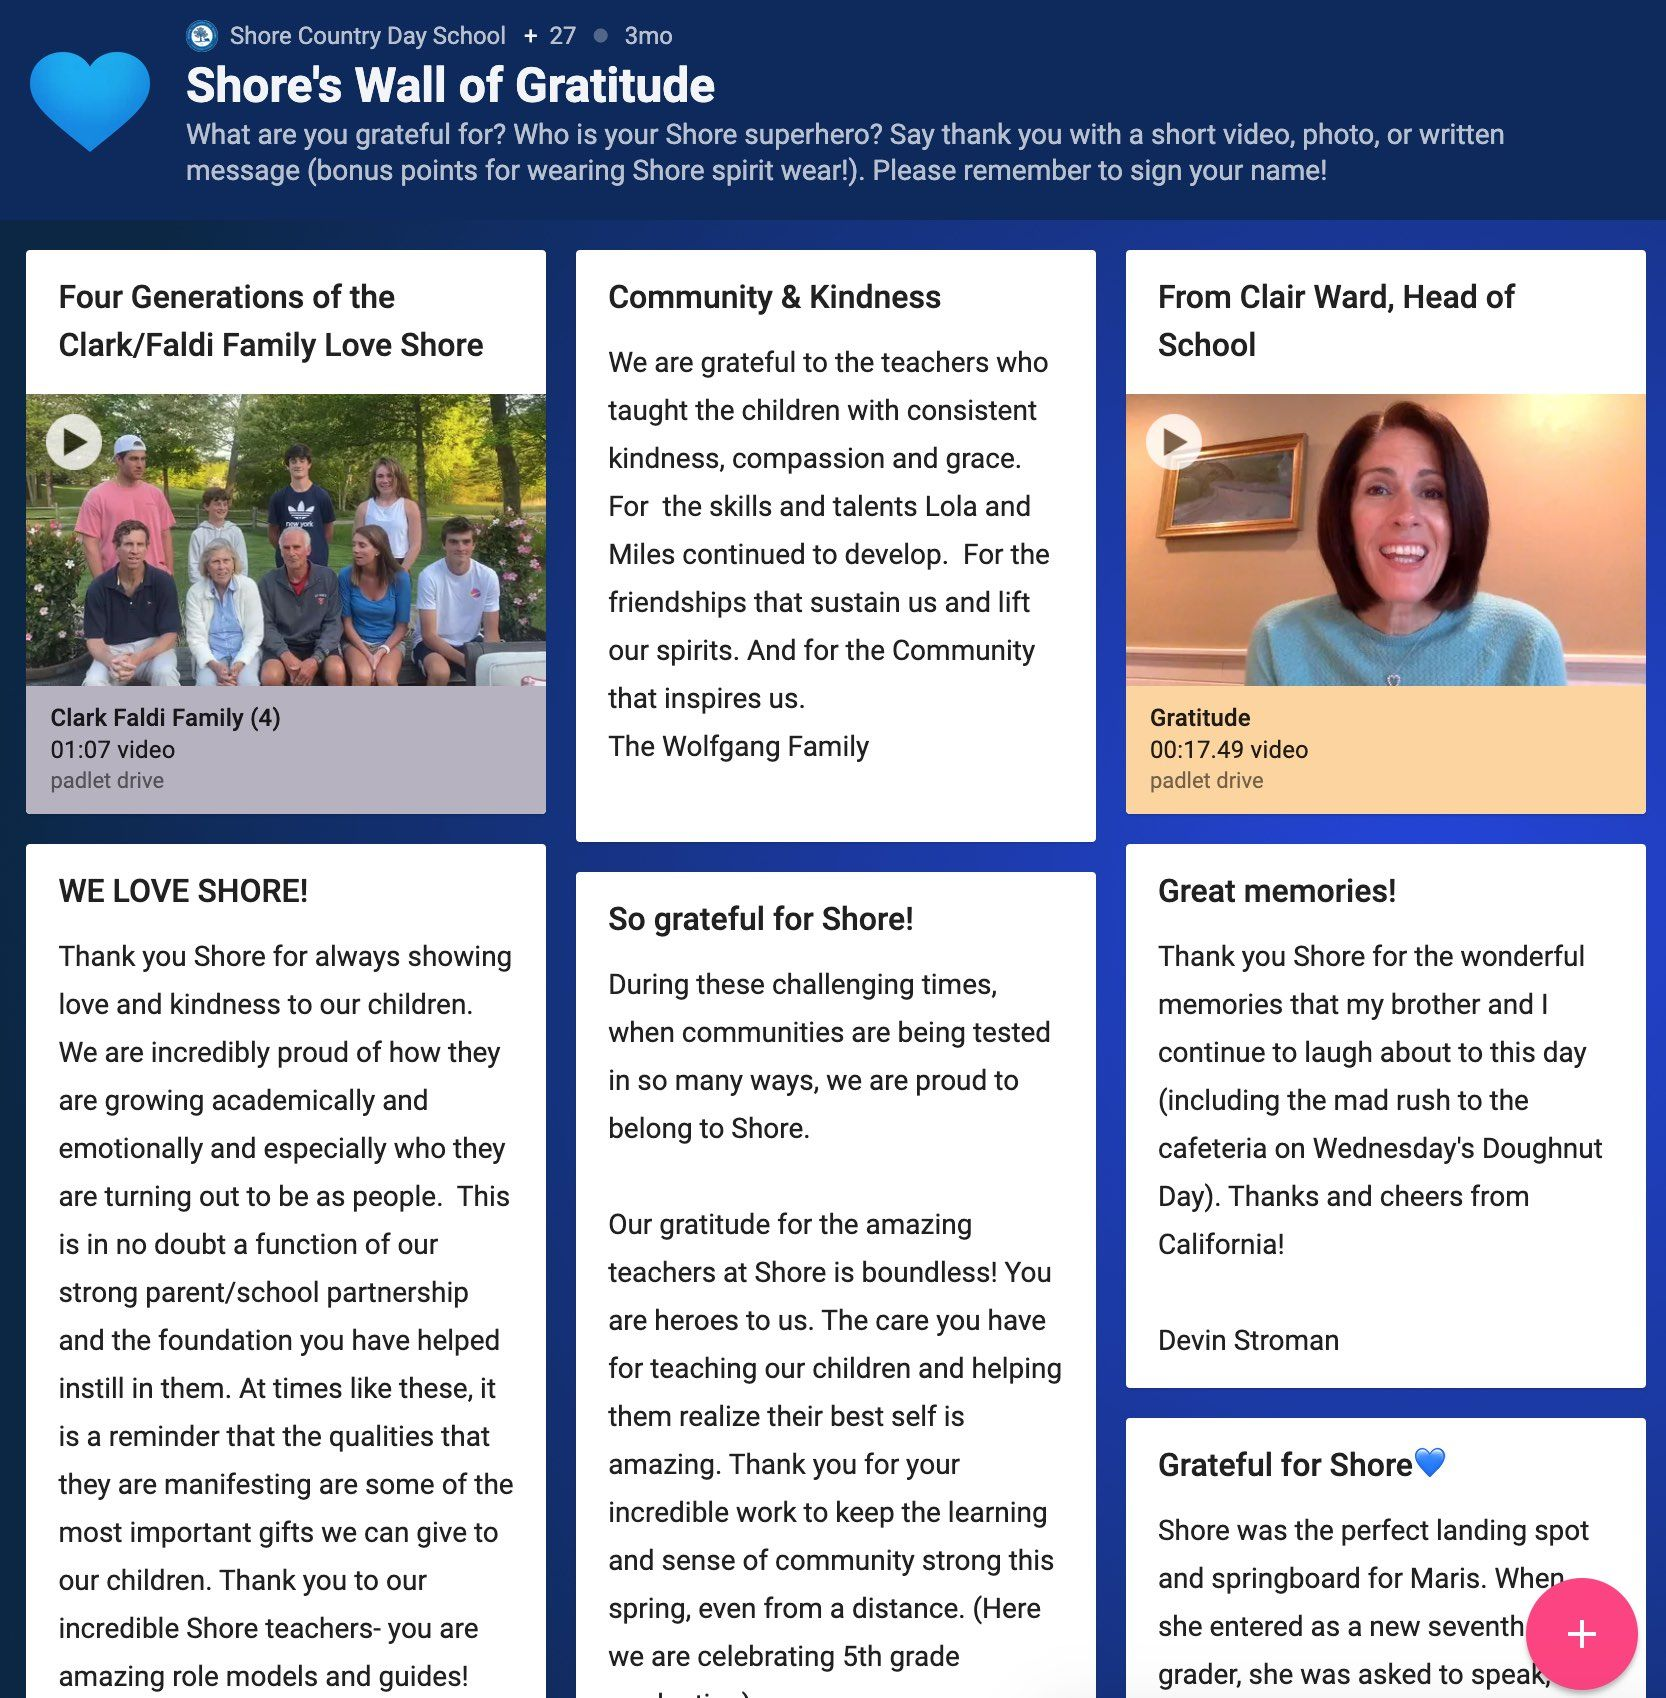 Shore's Wall of Gratitude